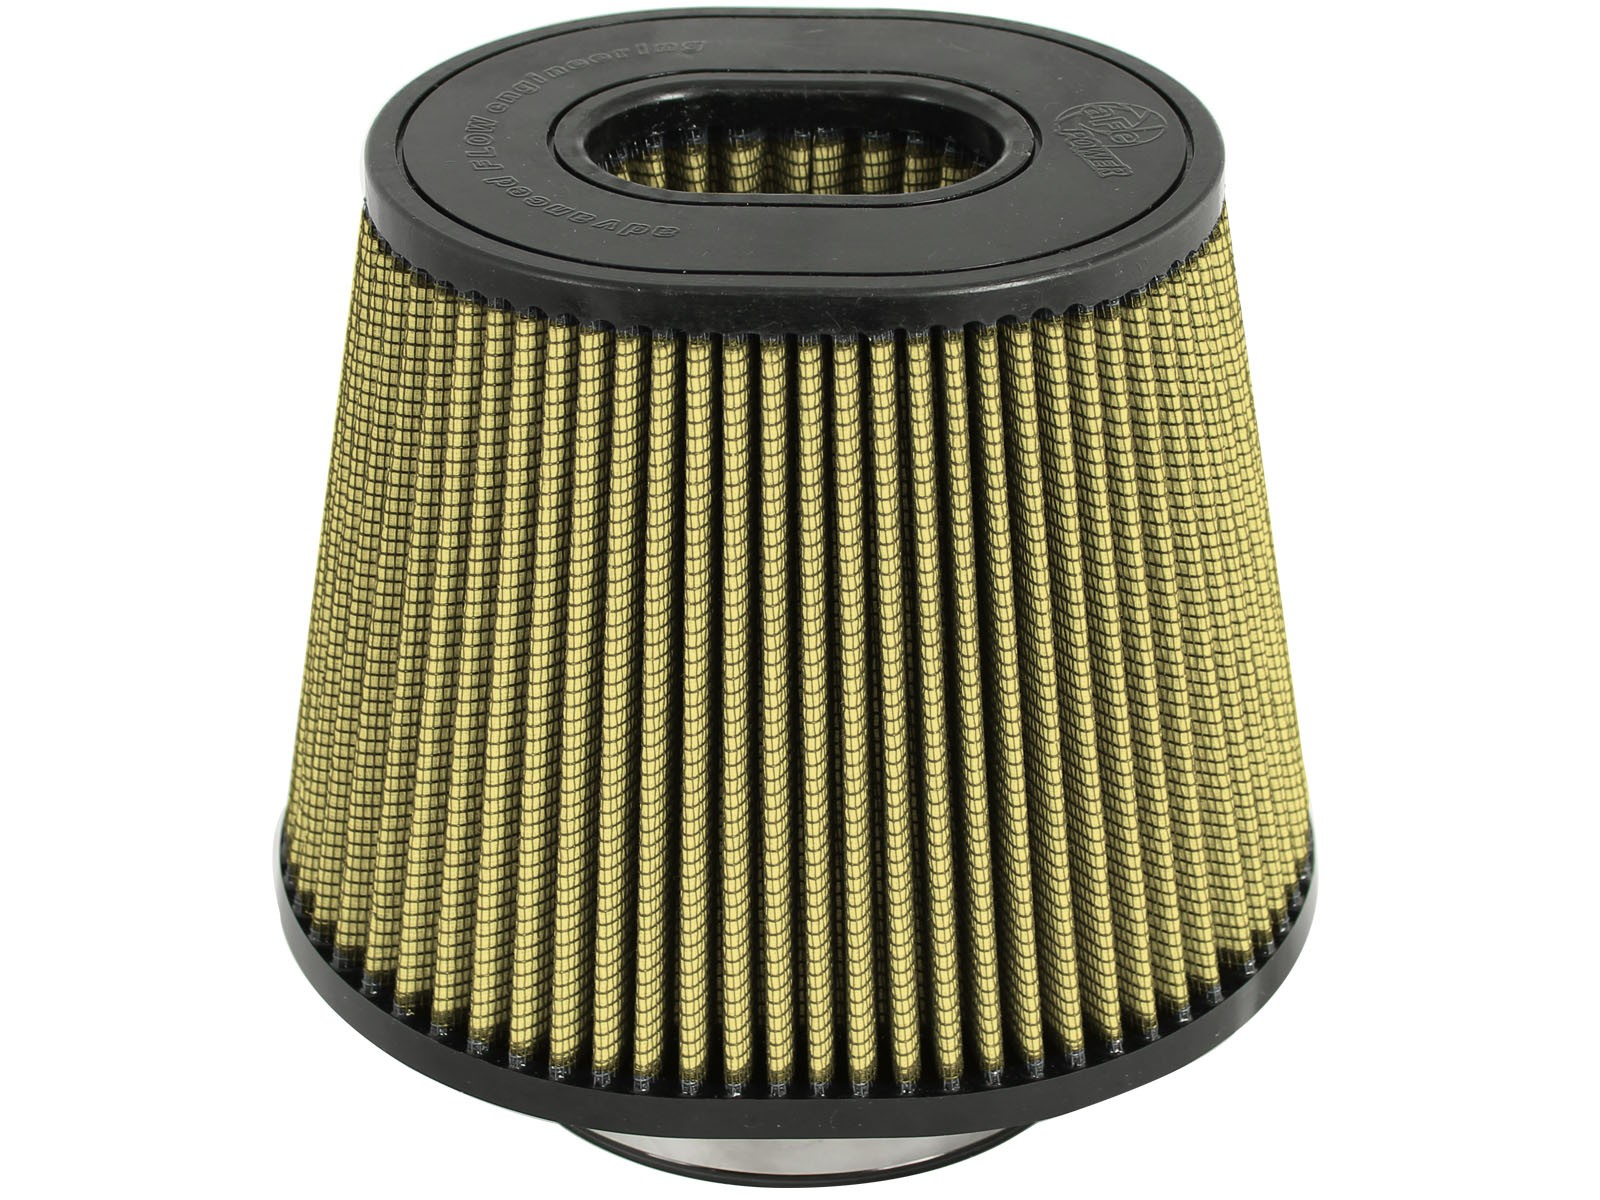 aFe POWER 72-91064 Magnum FLOW Pro GUARD7 Air Filter